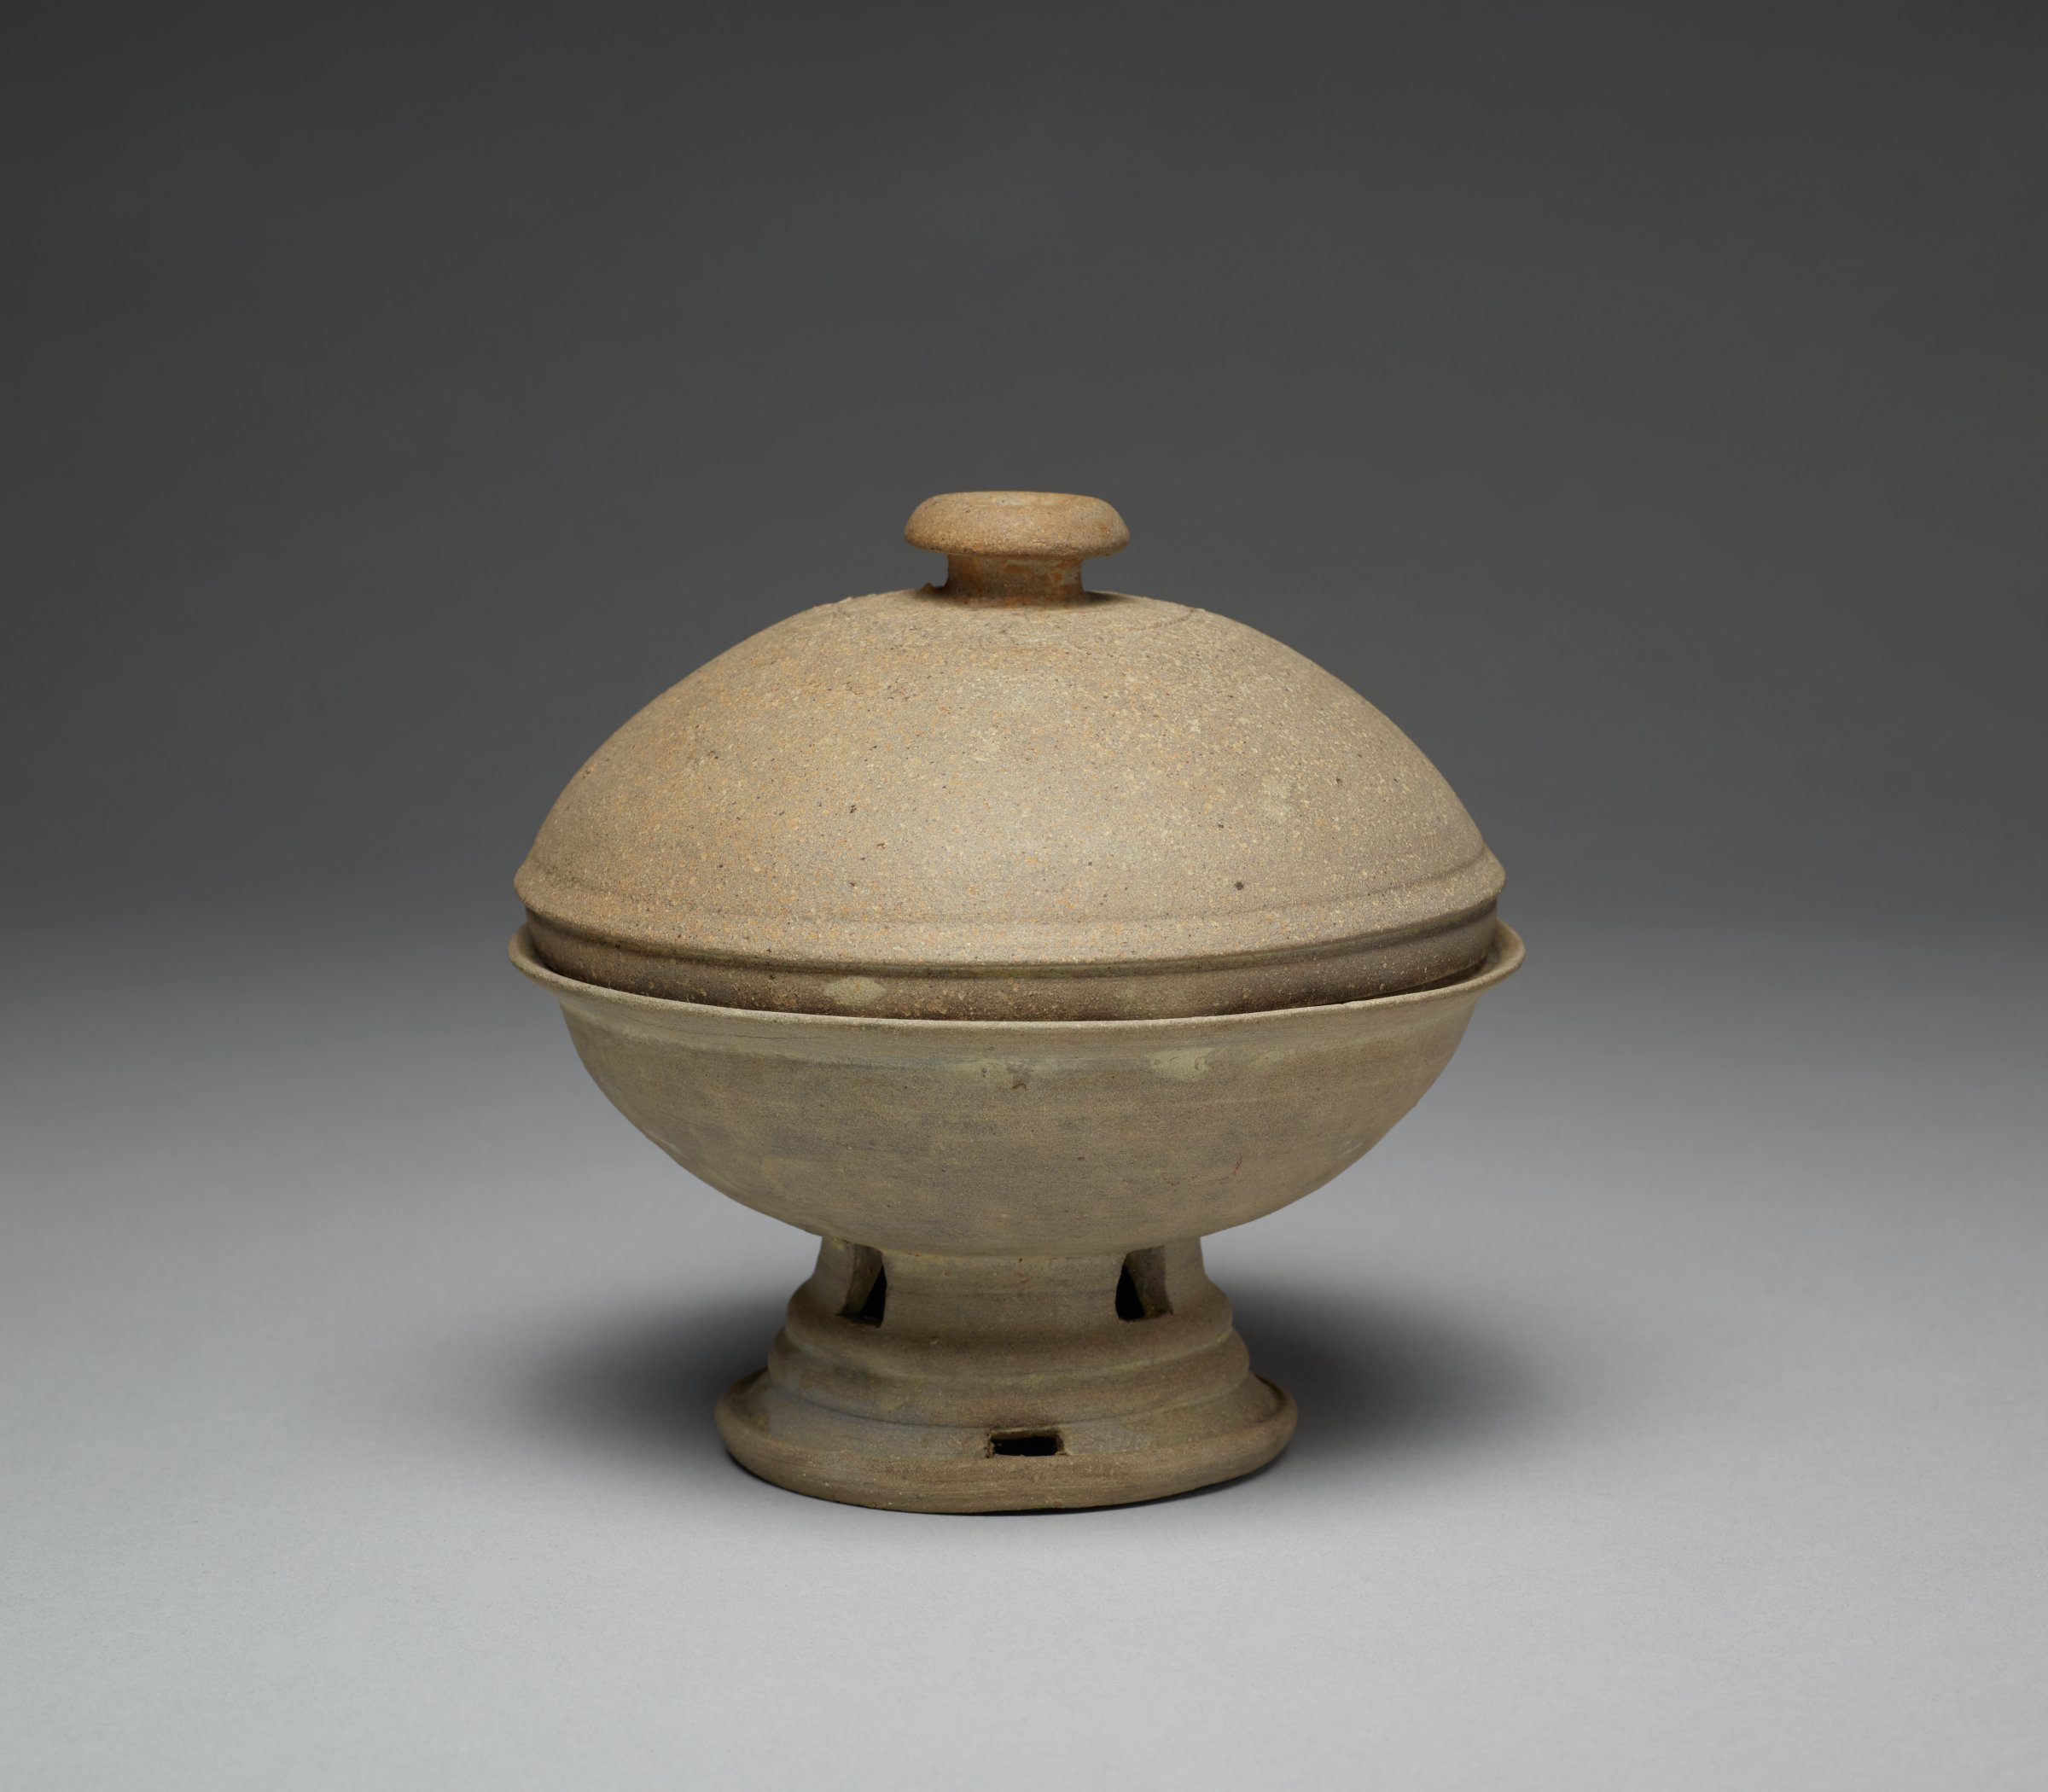 Perforated foot for base of bowl, cover decorated with lightly incised floral design around knob